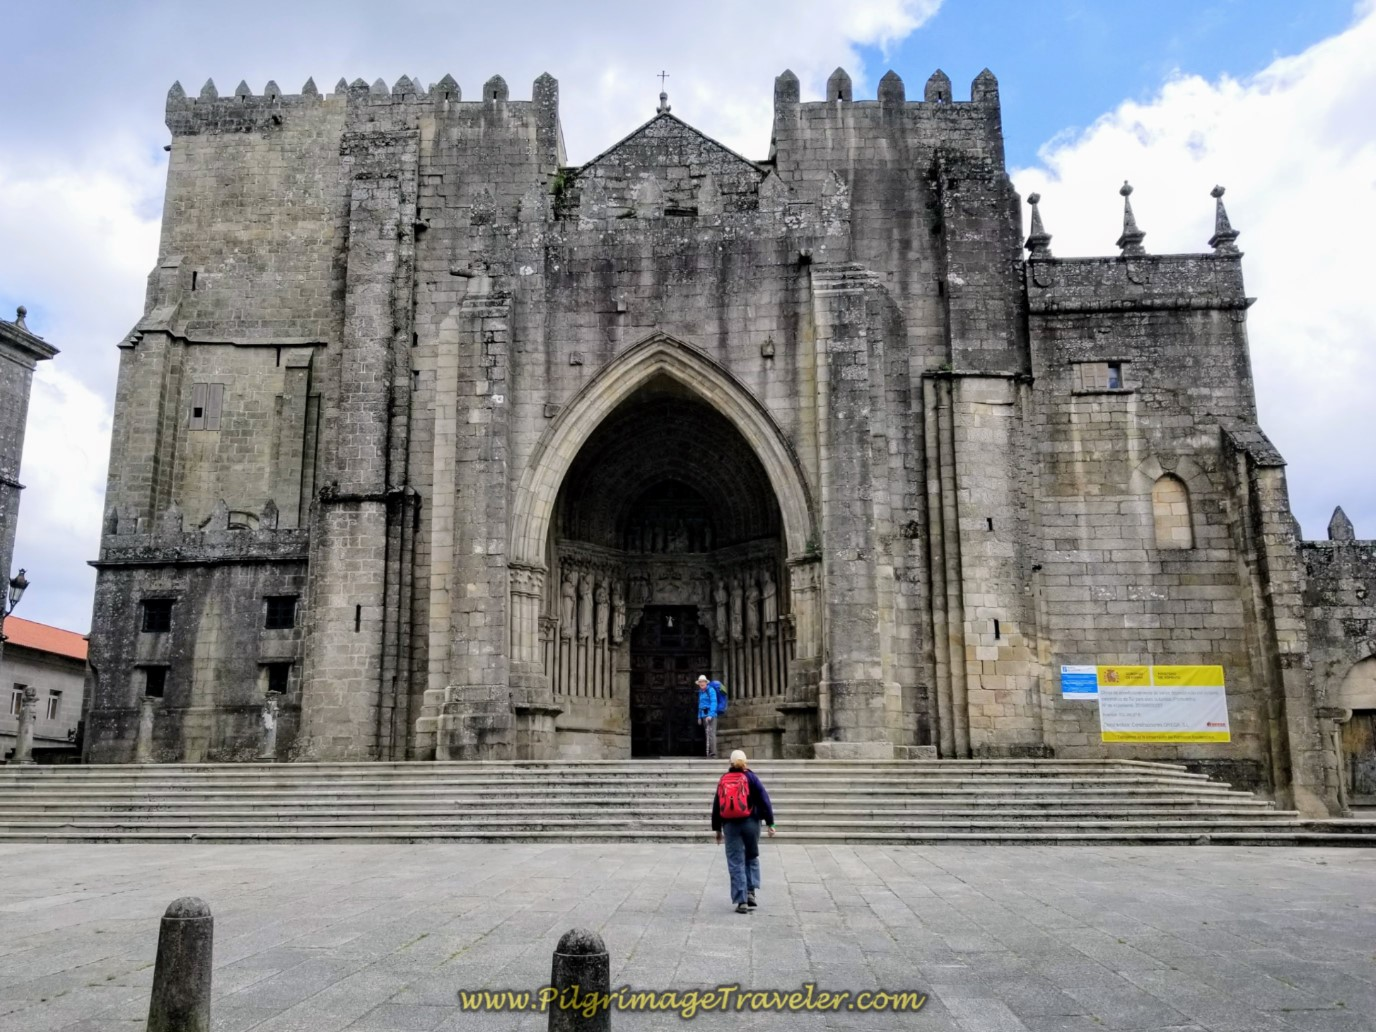 The Catedral de Tui on day nineteen on the Central Route of the Portuguese Camino